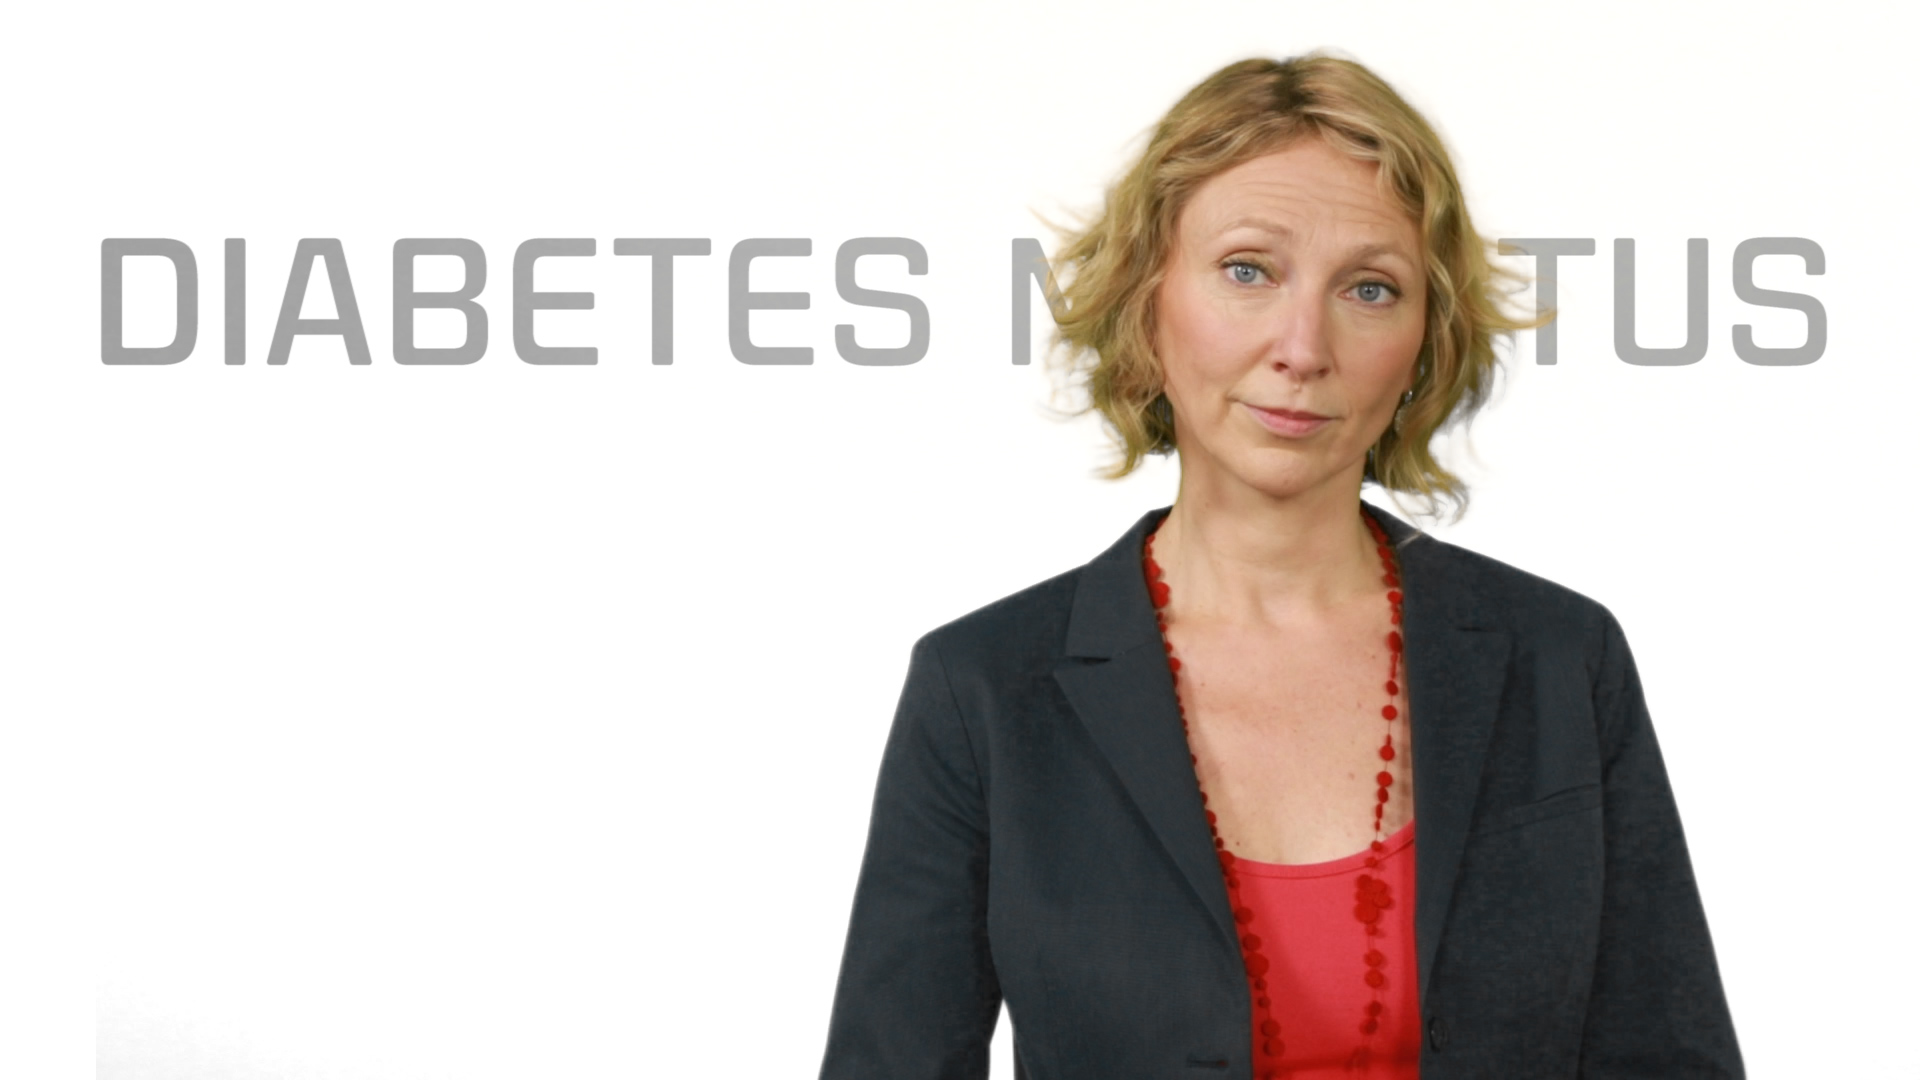 Bekijk de video: Diabetes mellitus